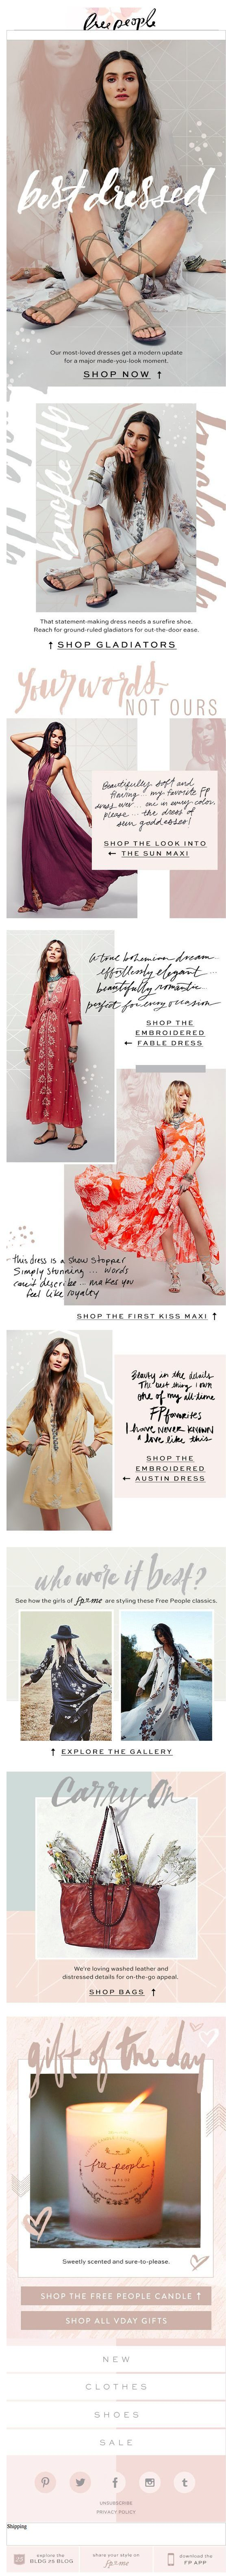 Free People 'Holiday' Email